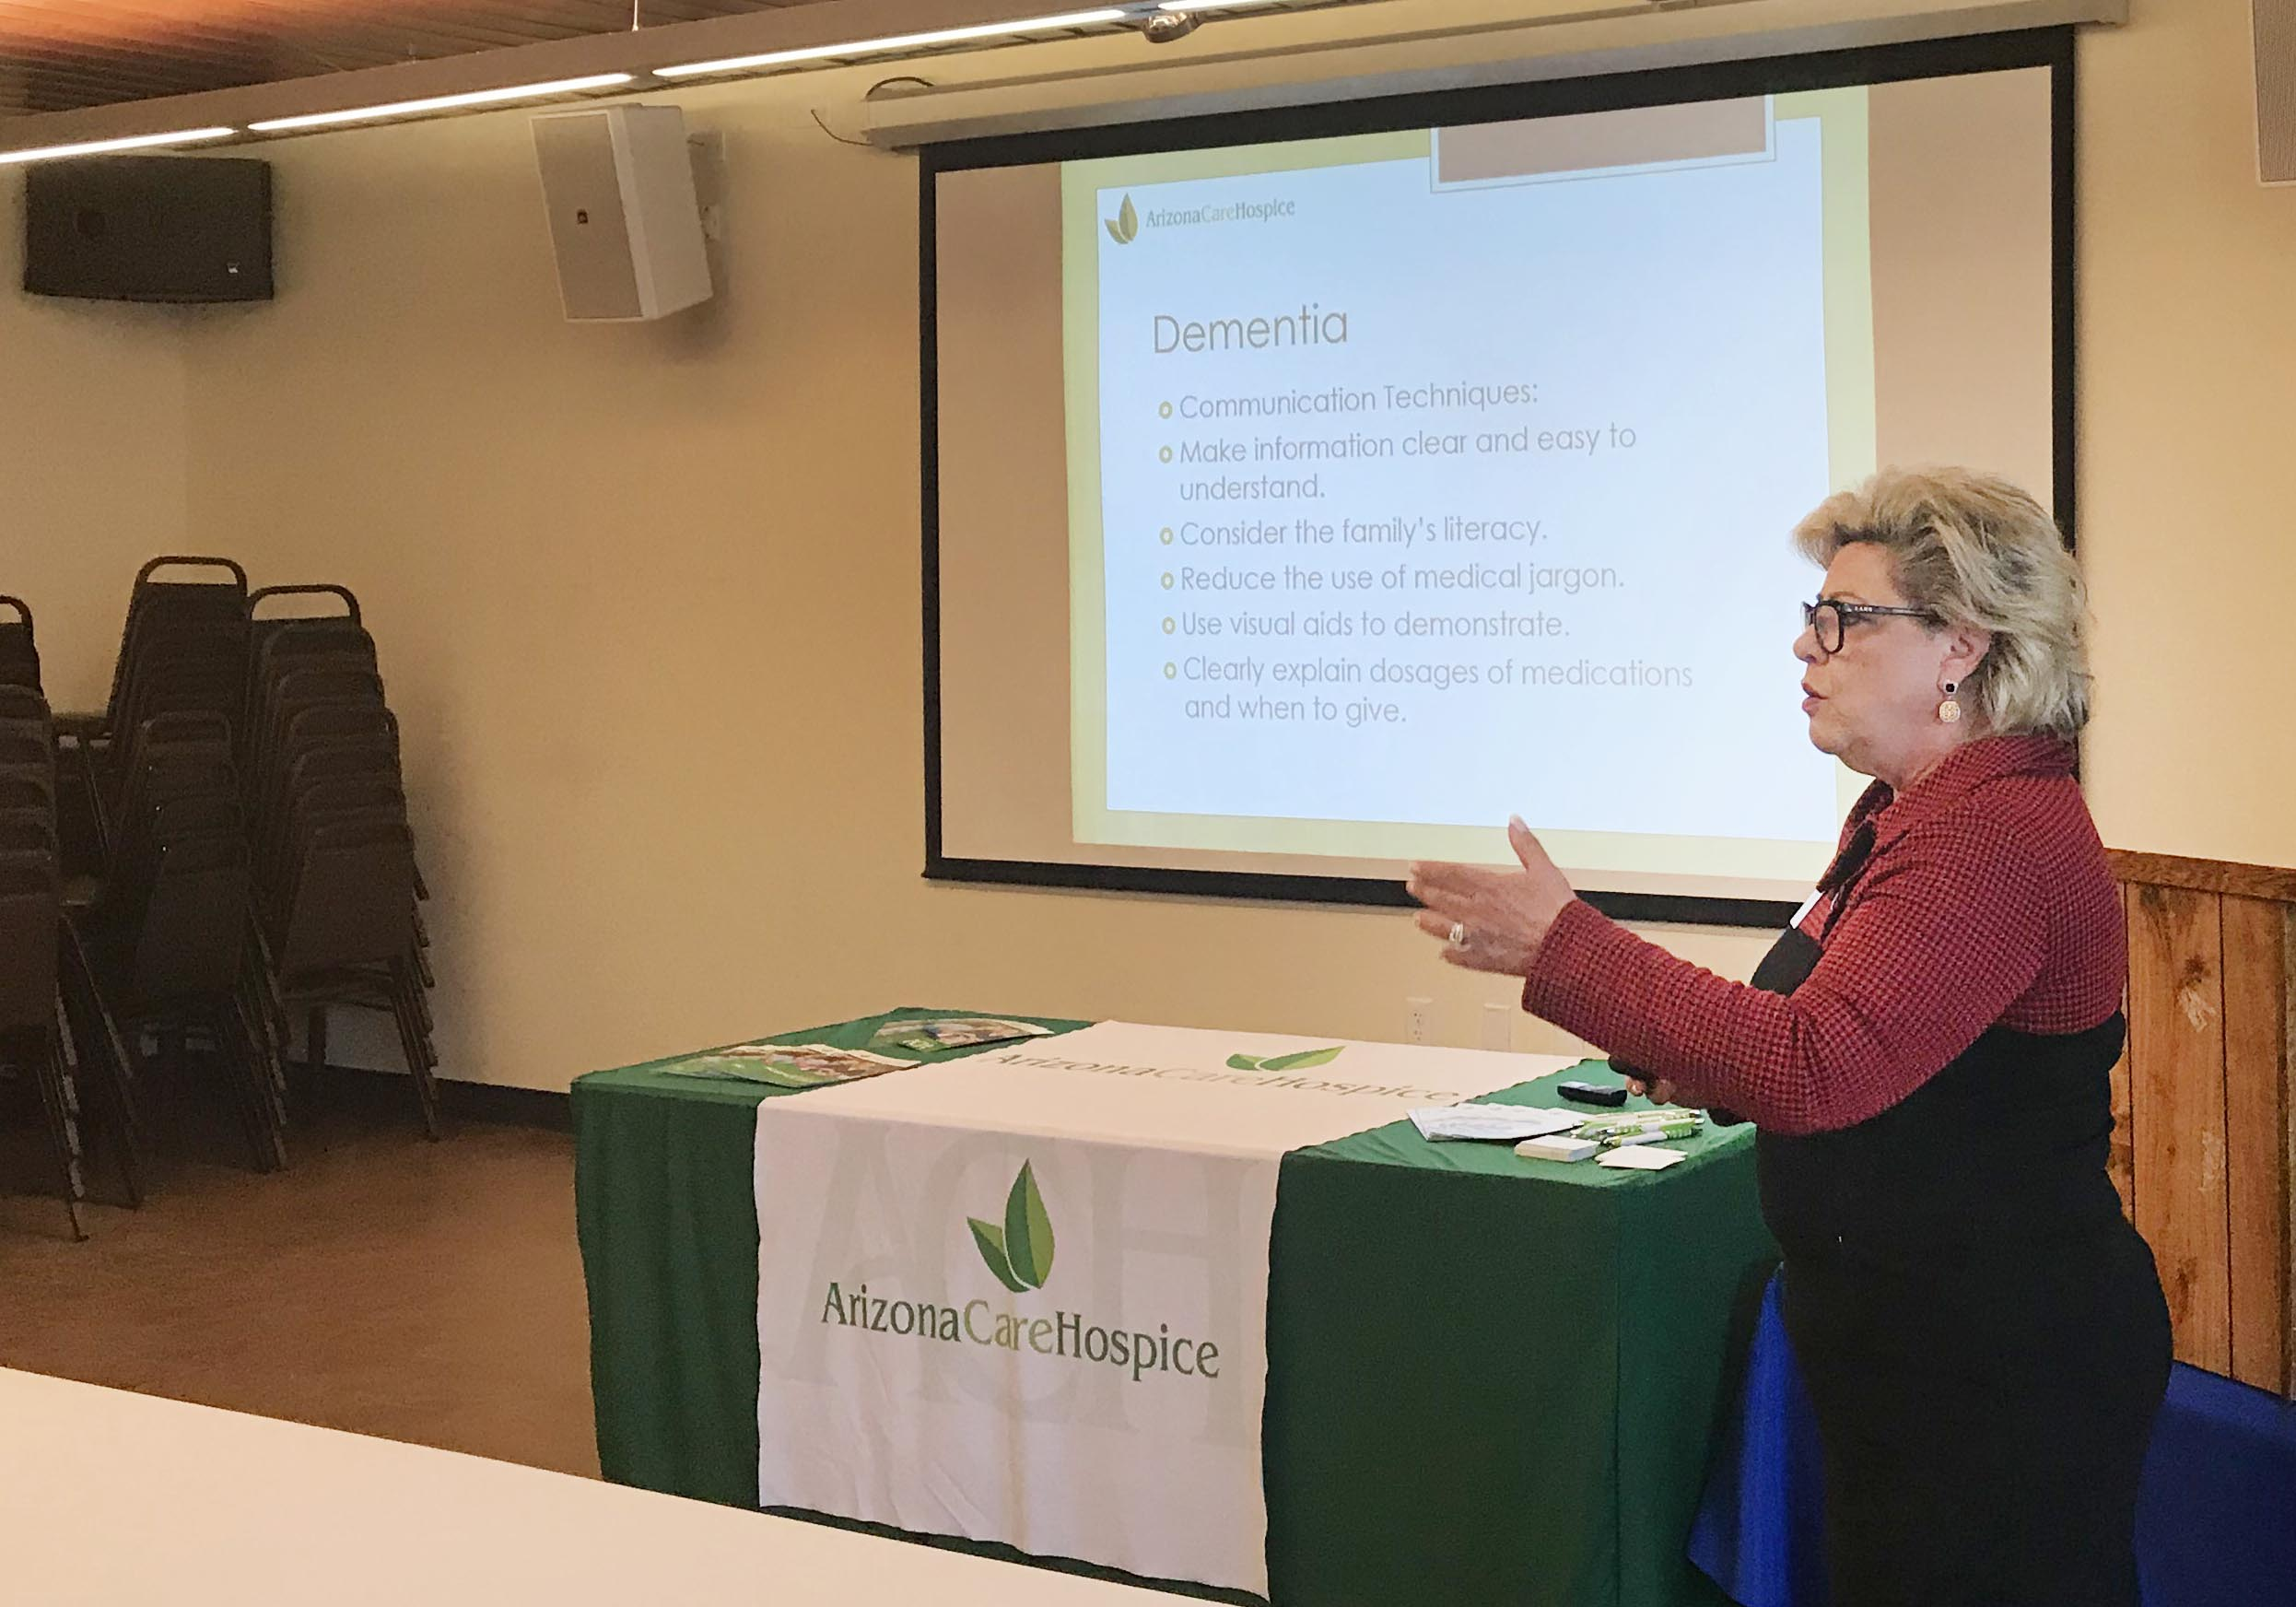 Local program offers helpful tips on caring for dementia patients